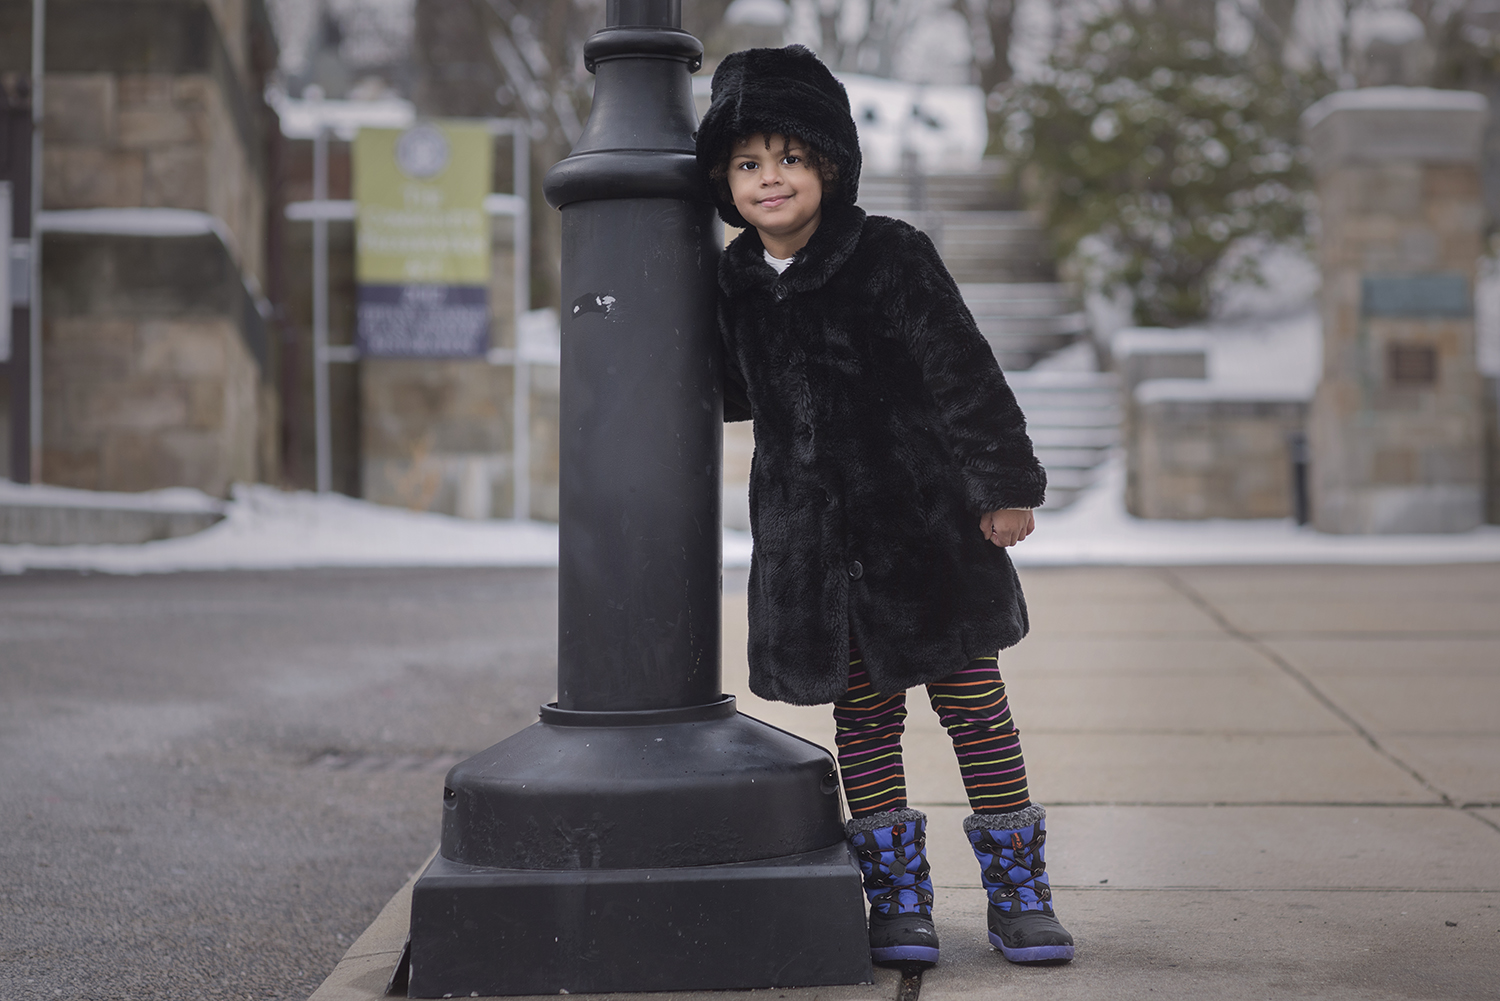 zWinter Children's Street Photography!  Let it snow!